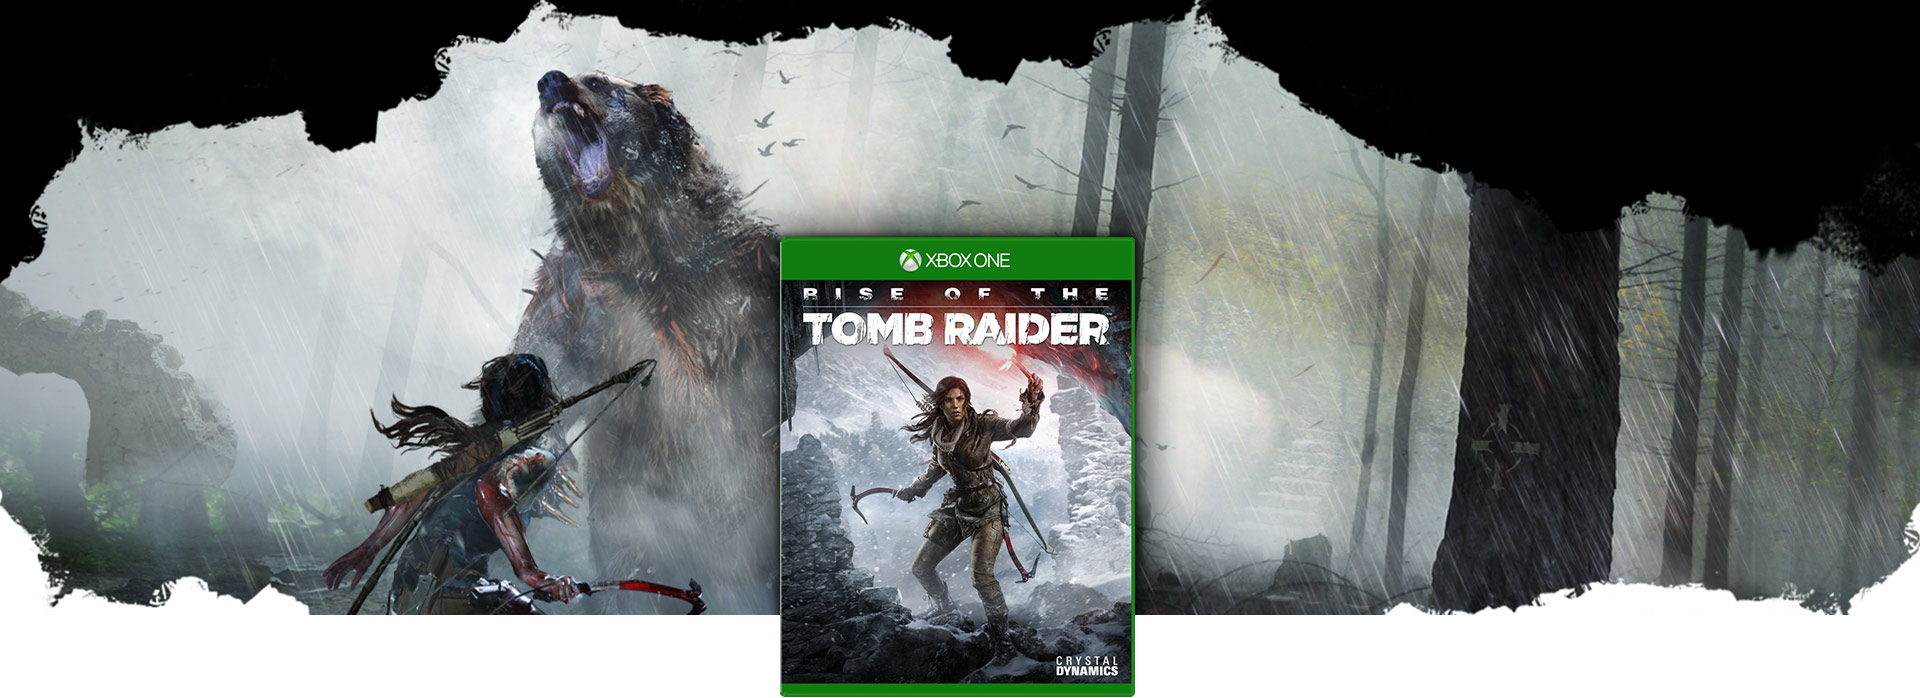 Rise of the Tomb Raider boxshot, over a background scene of Lara Croft confronting a Grizzly Bear